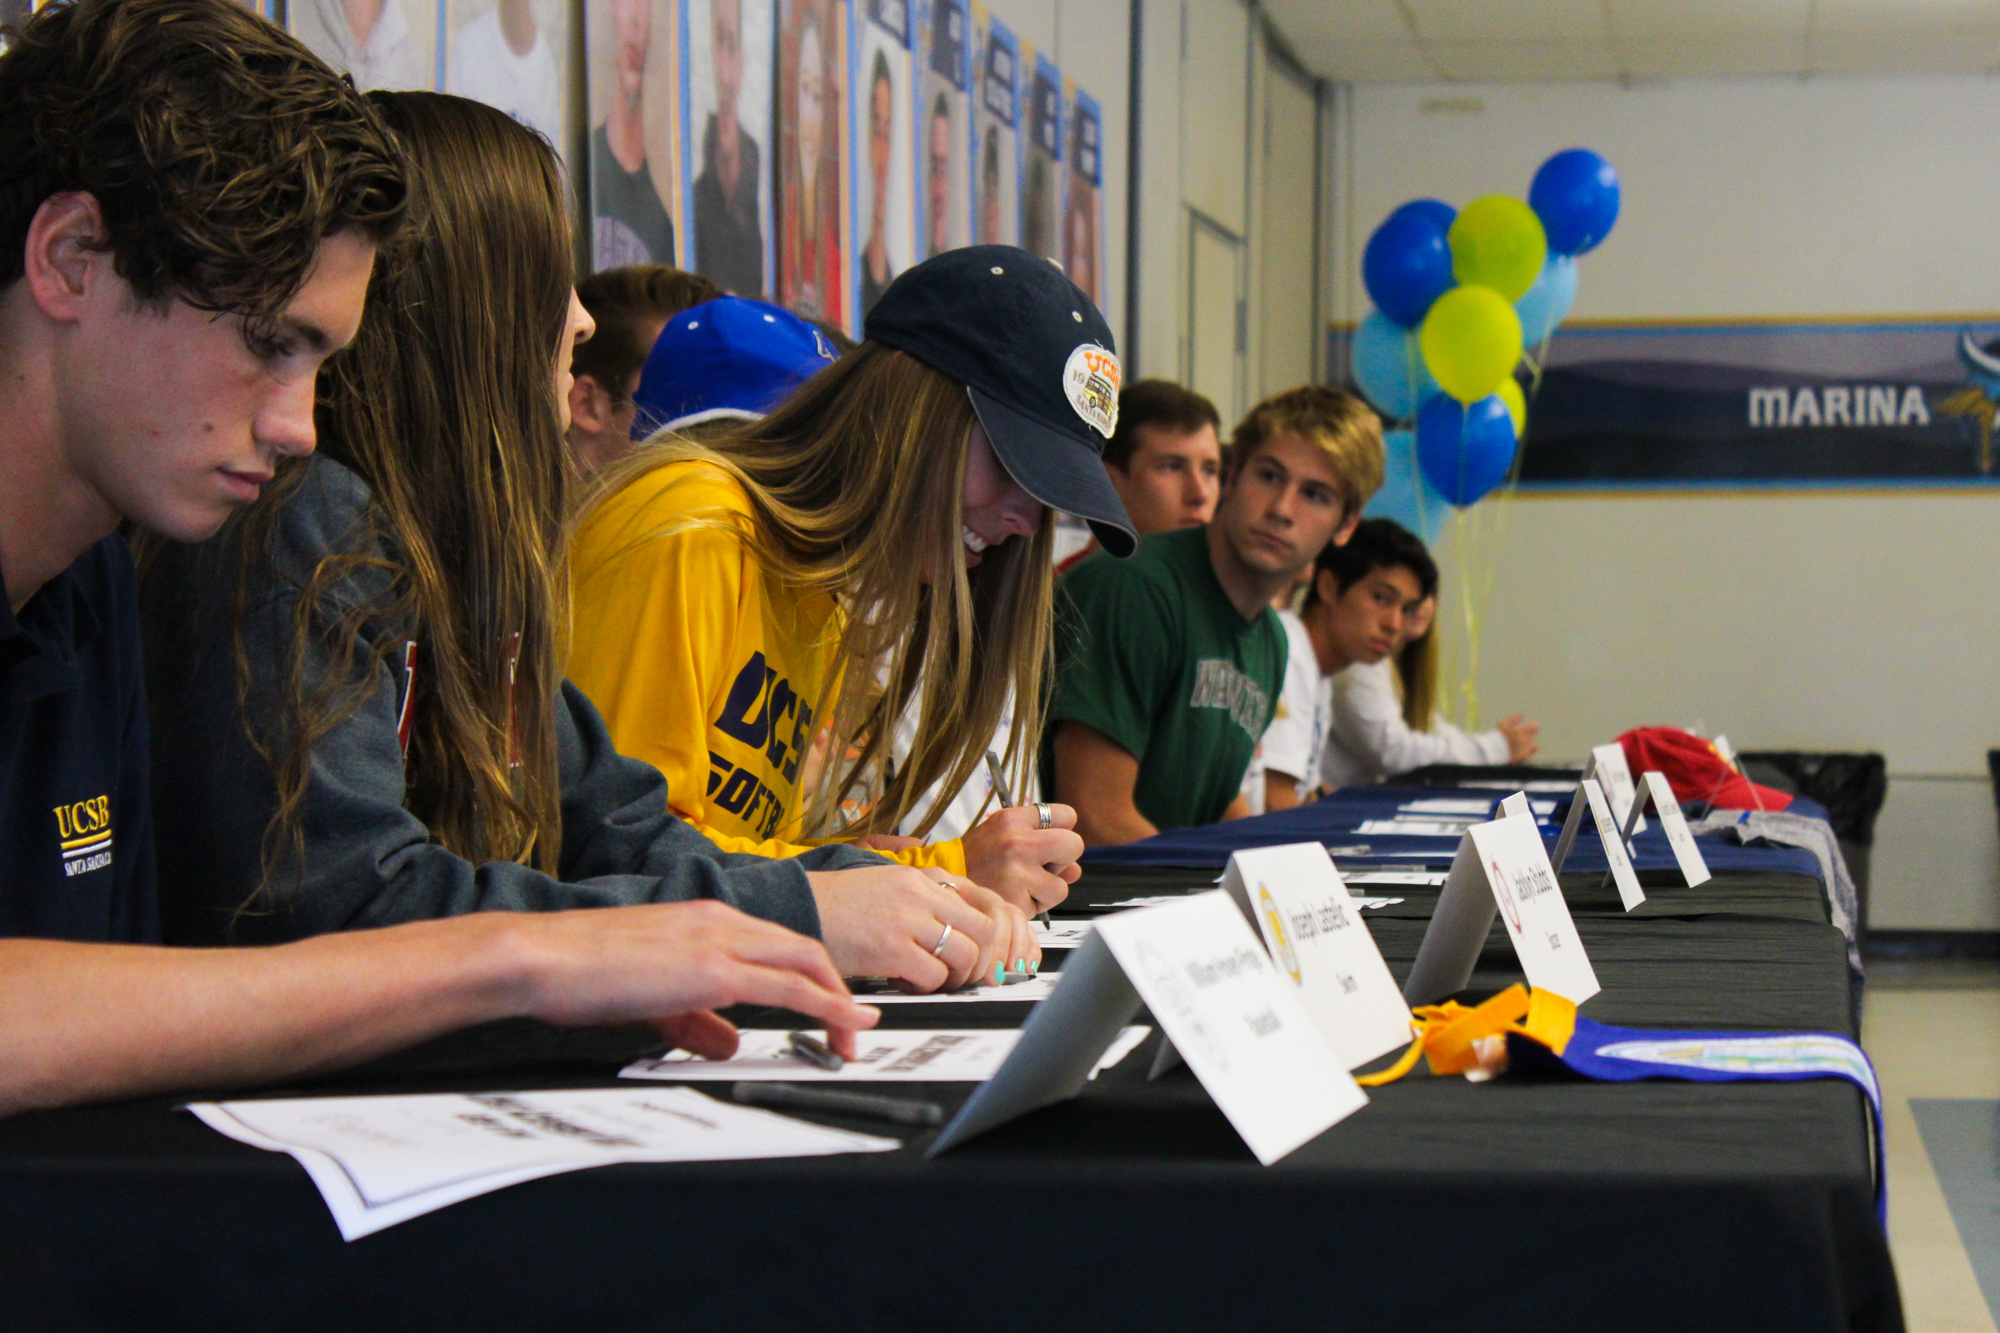 Student athletics signing letters of intent for college